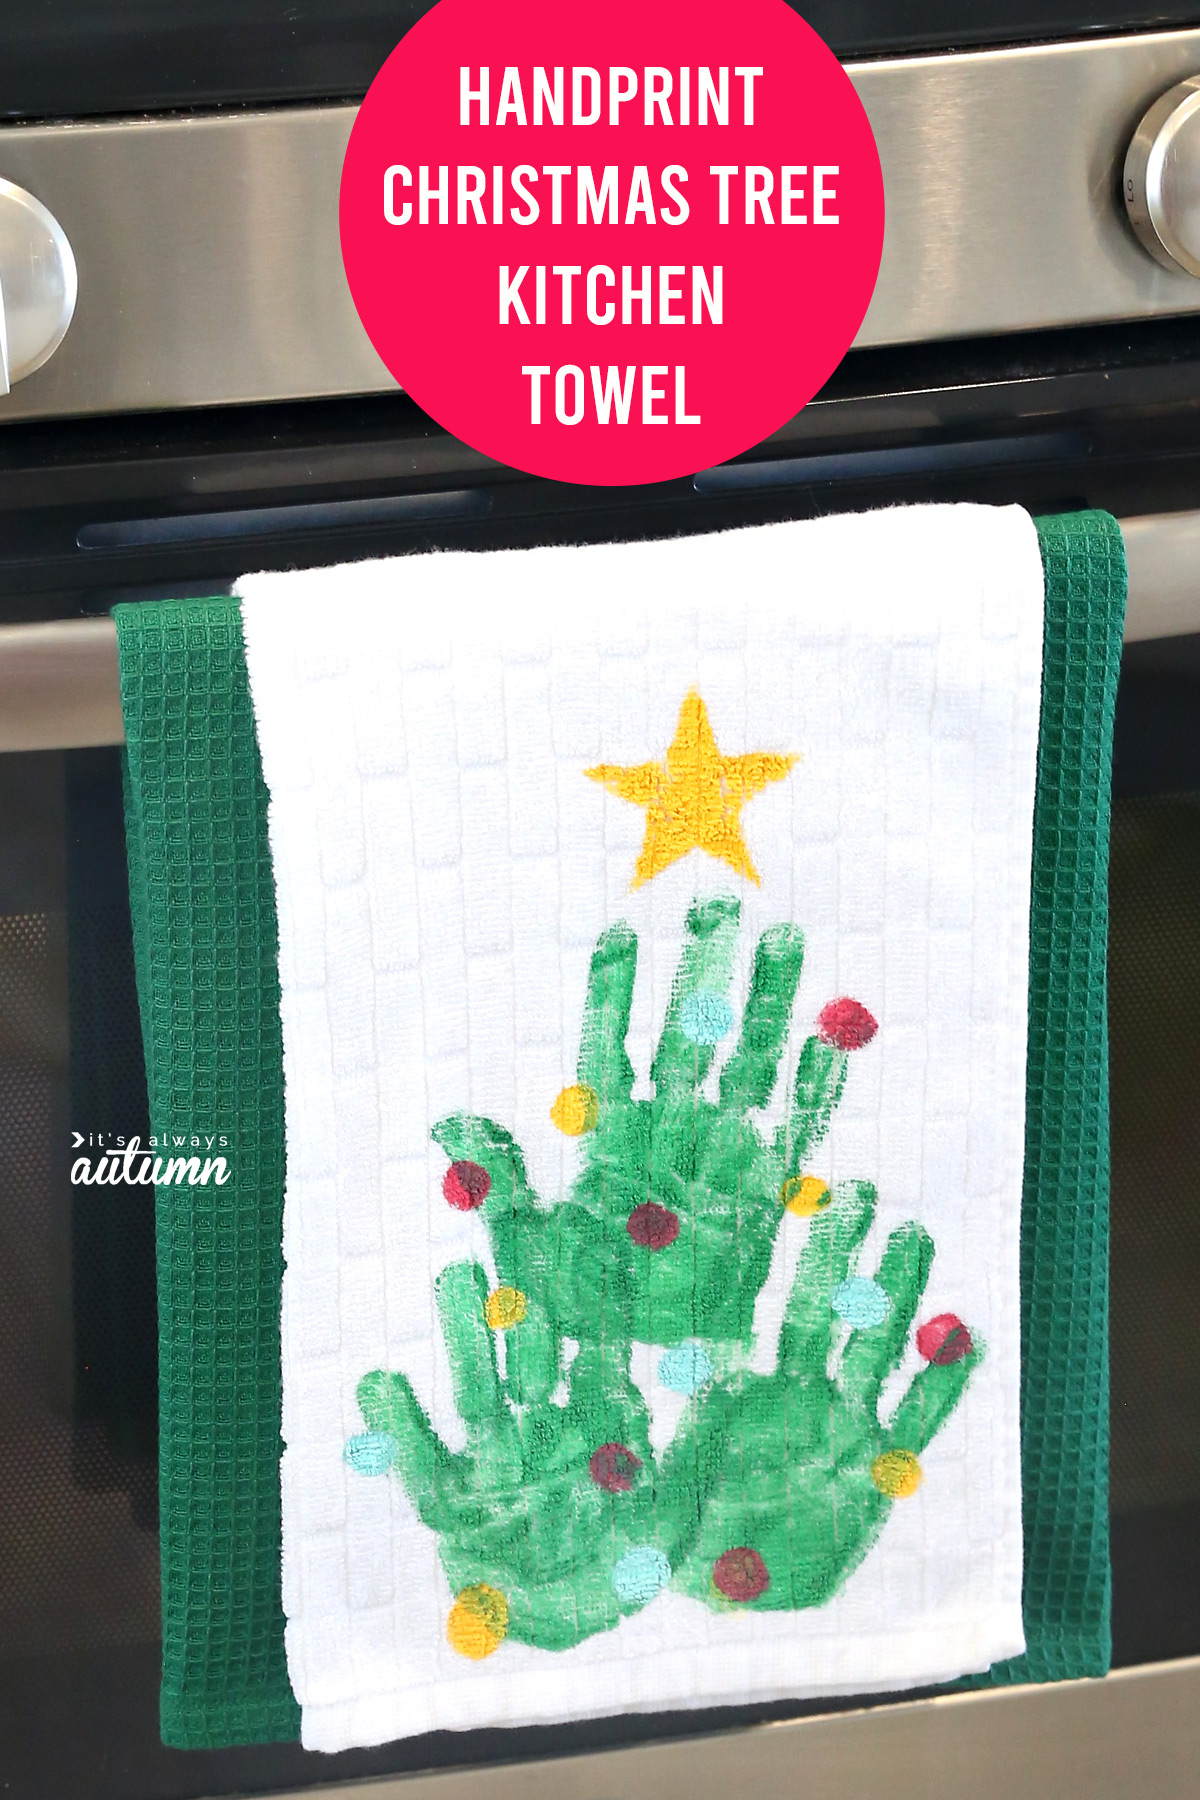 This adorable handprint Christmas tree kitchen towel makes a great gift for grandparents!